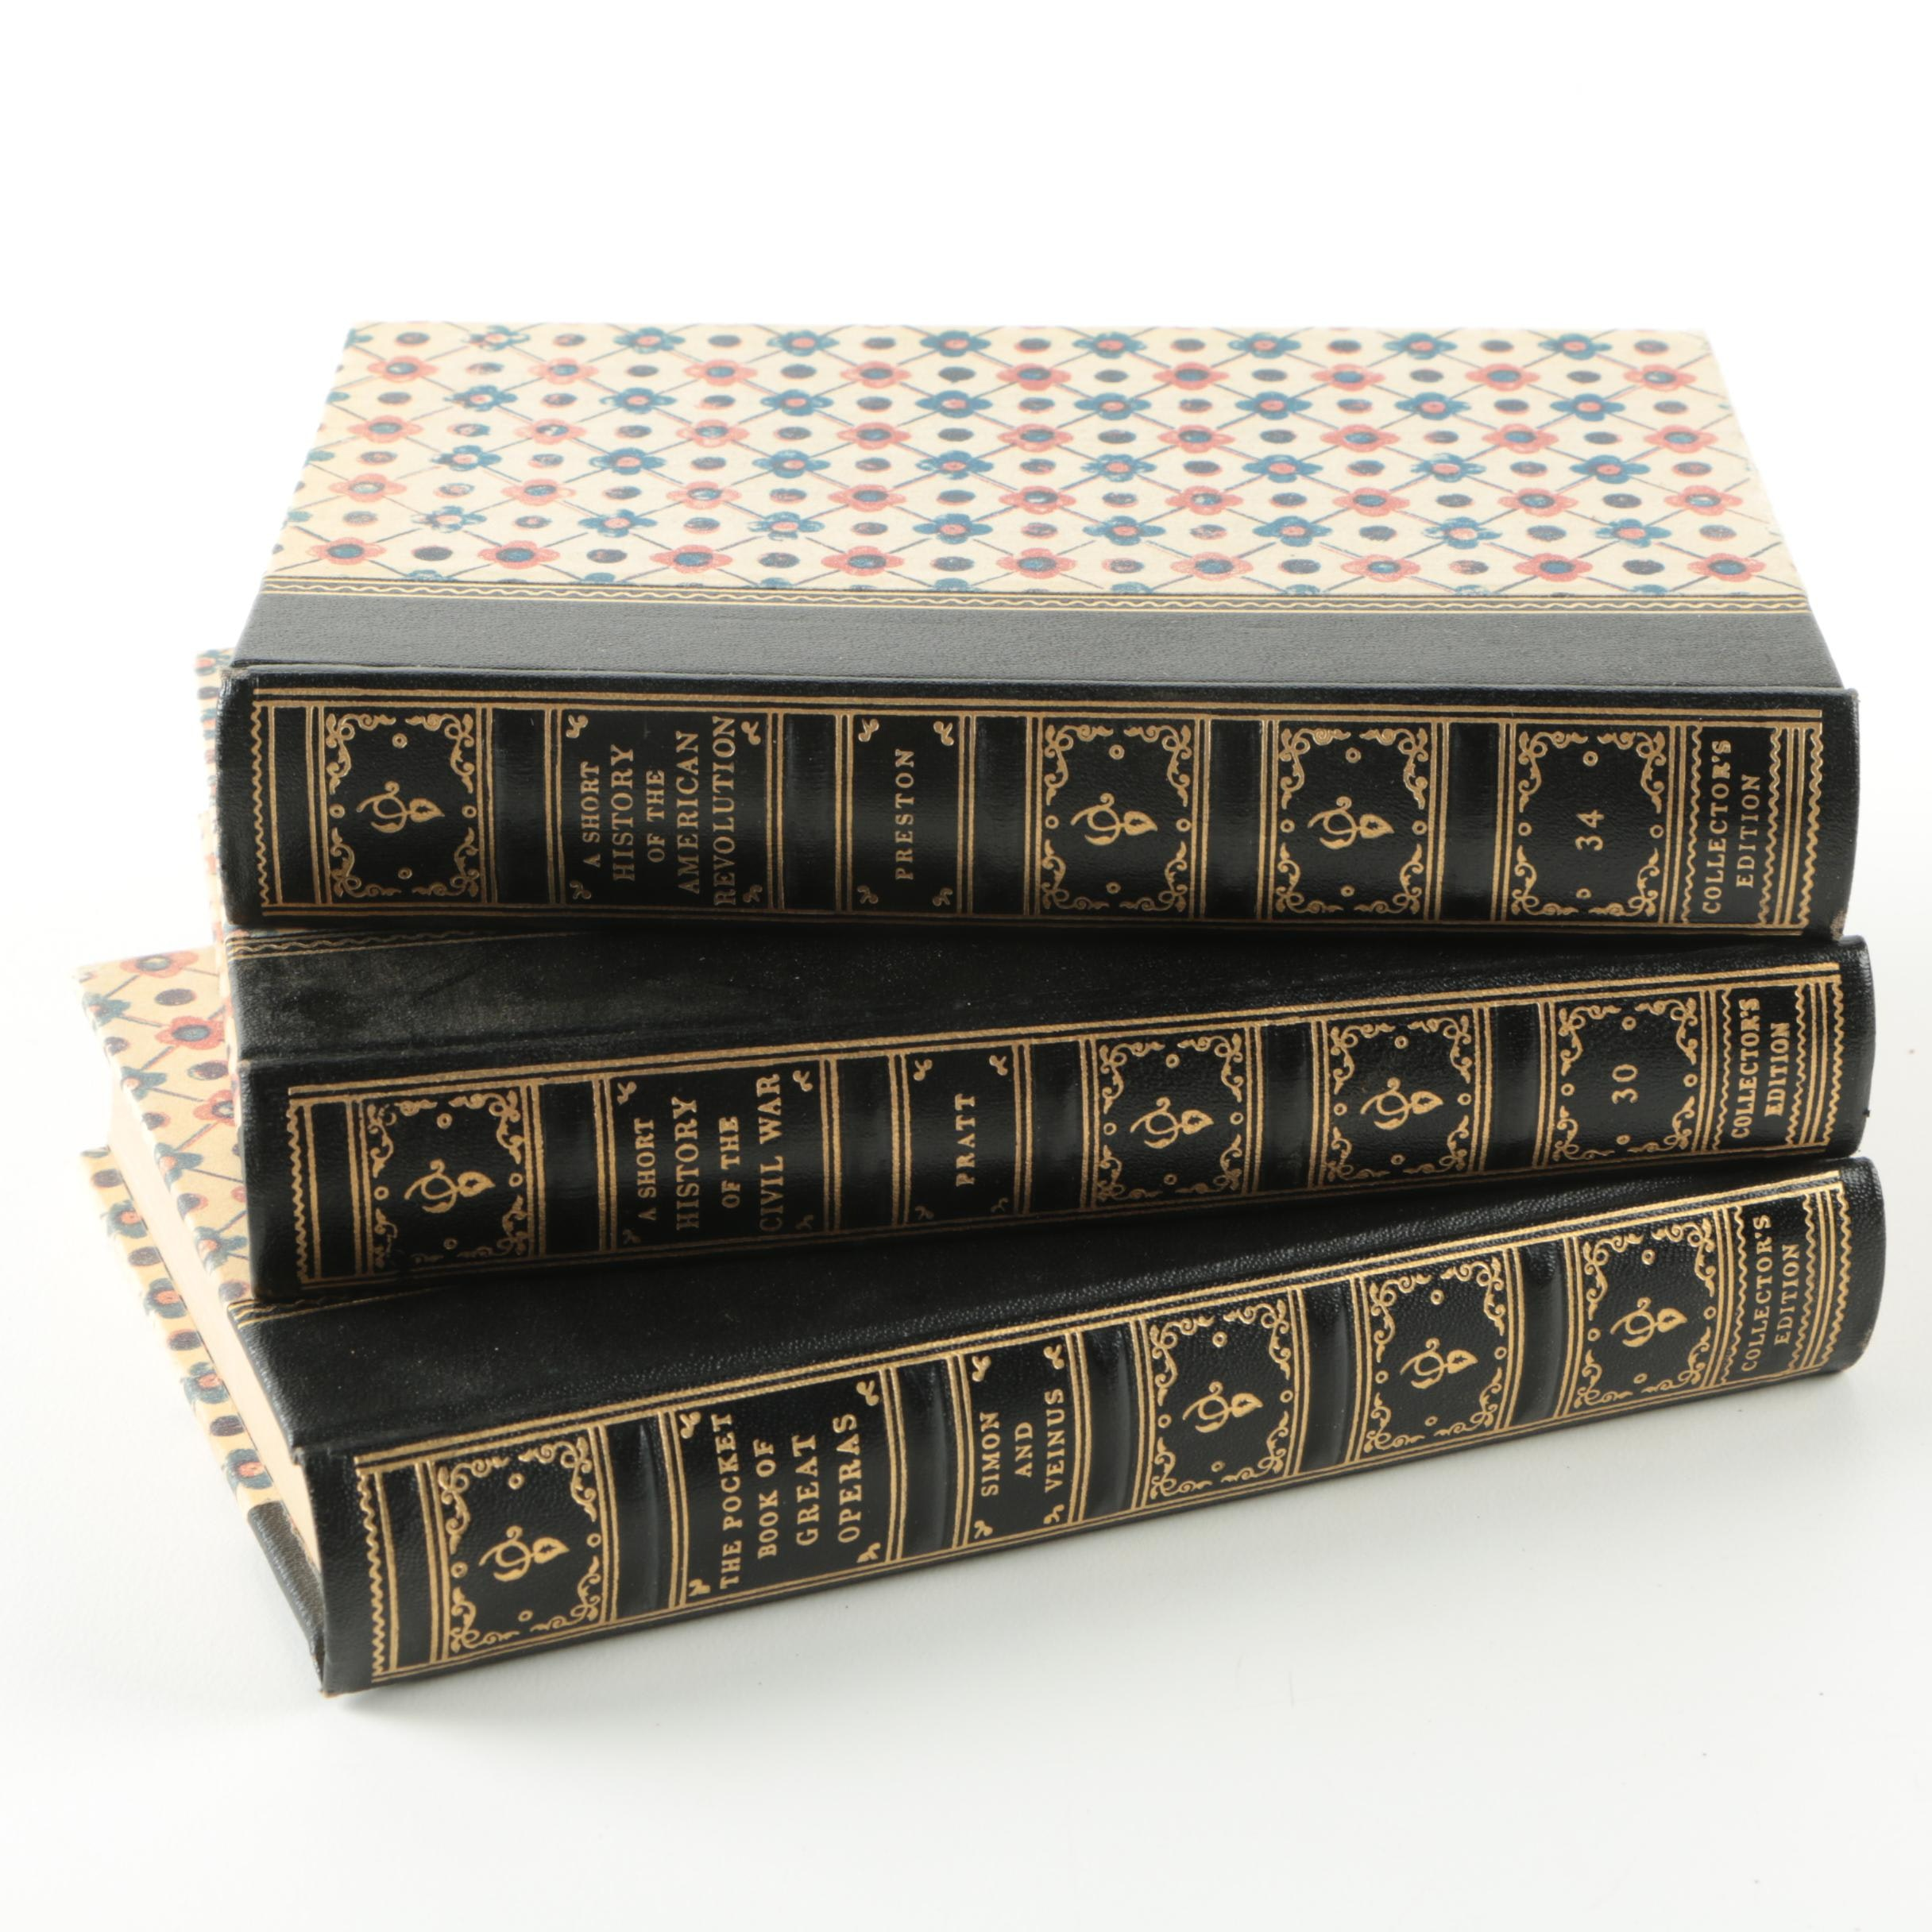 Vintage Collector's Edition Books